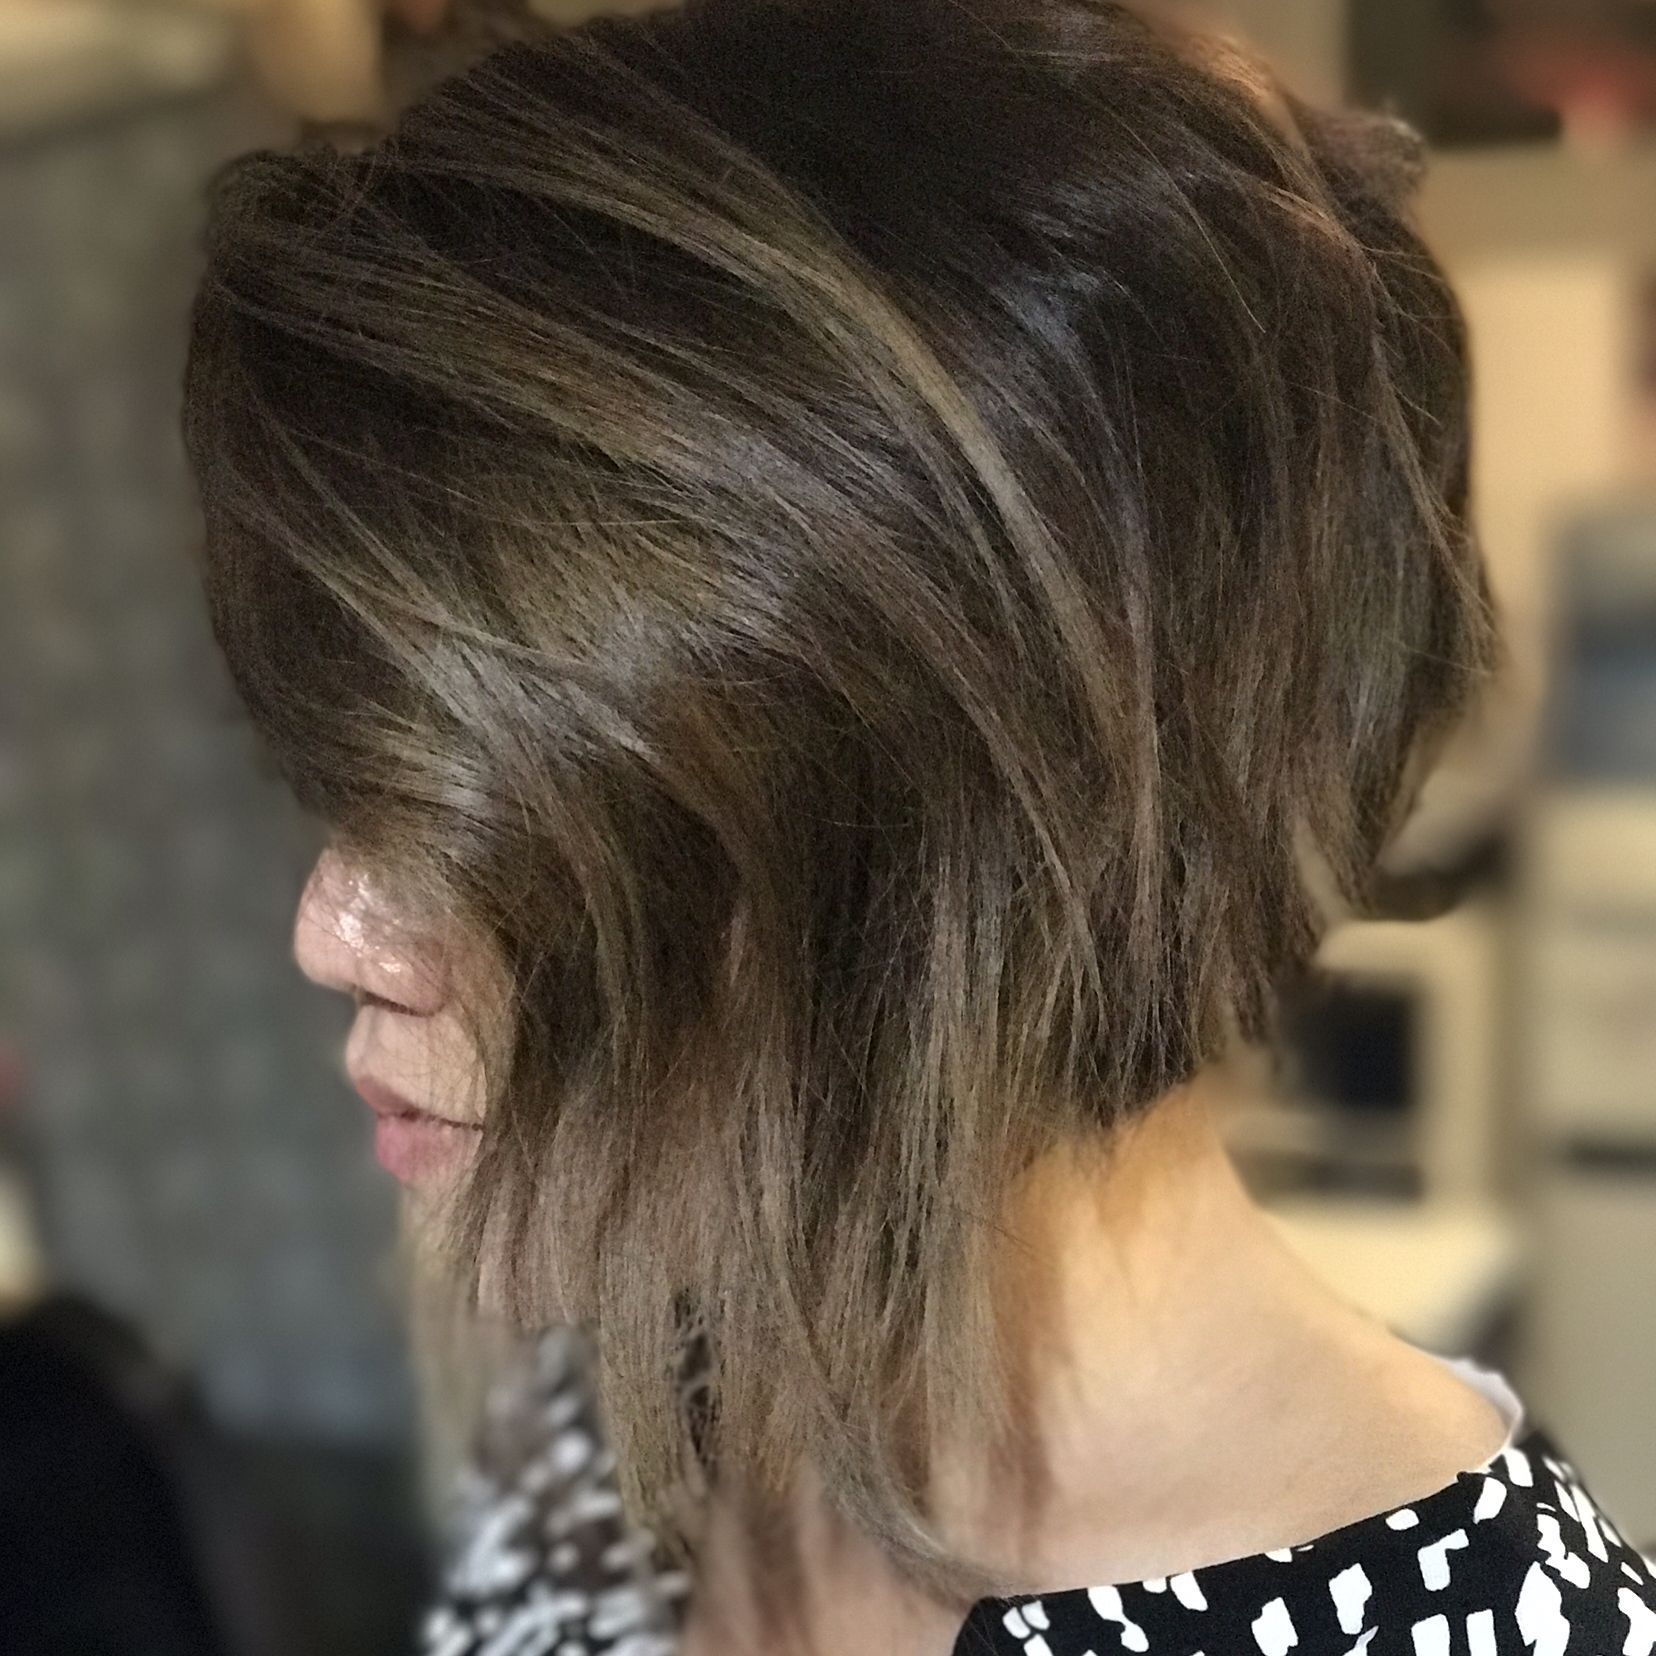 Top 25 Coolest Hairstyles For Women Over 40 - Stylendesigns | Short hair  styles, Hair styles, Womens hairstyles